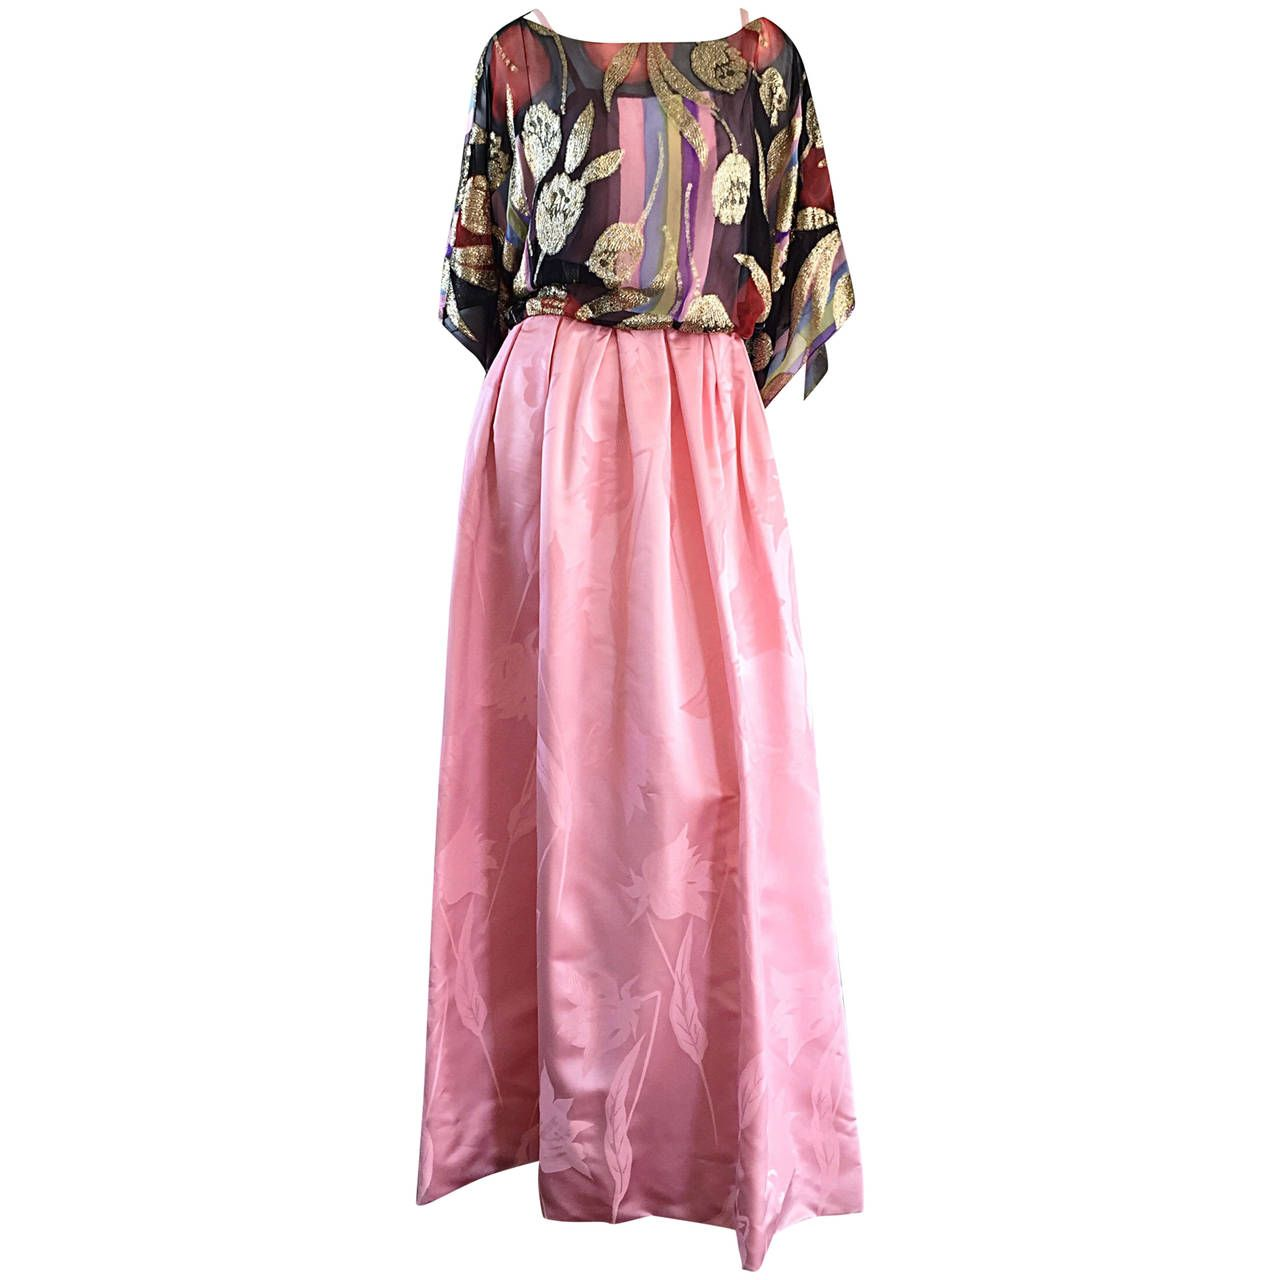 Exquisite Vintage Bohemian Pink Gown w/ Colorful Silk Gold Tulip ...